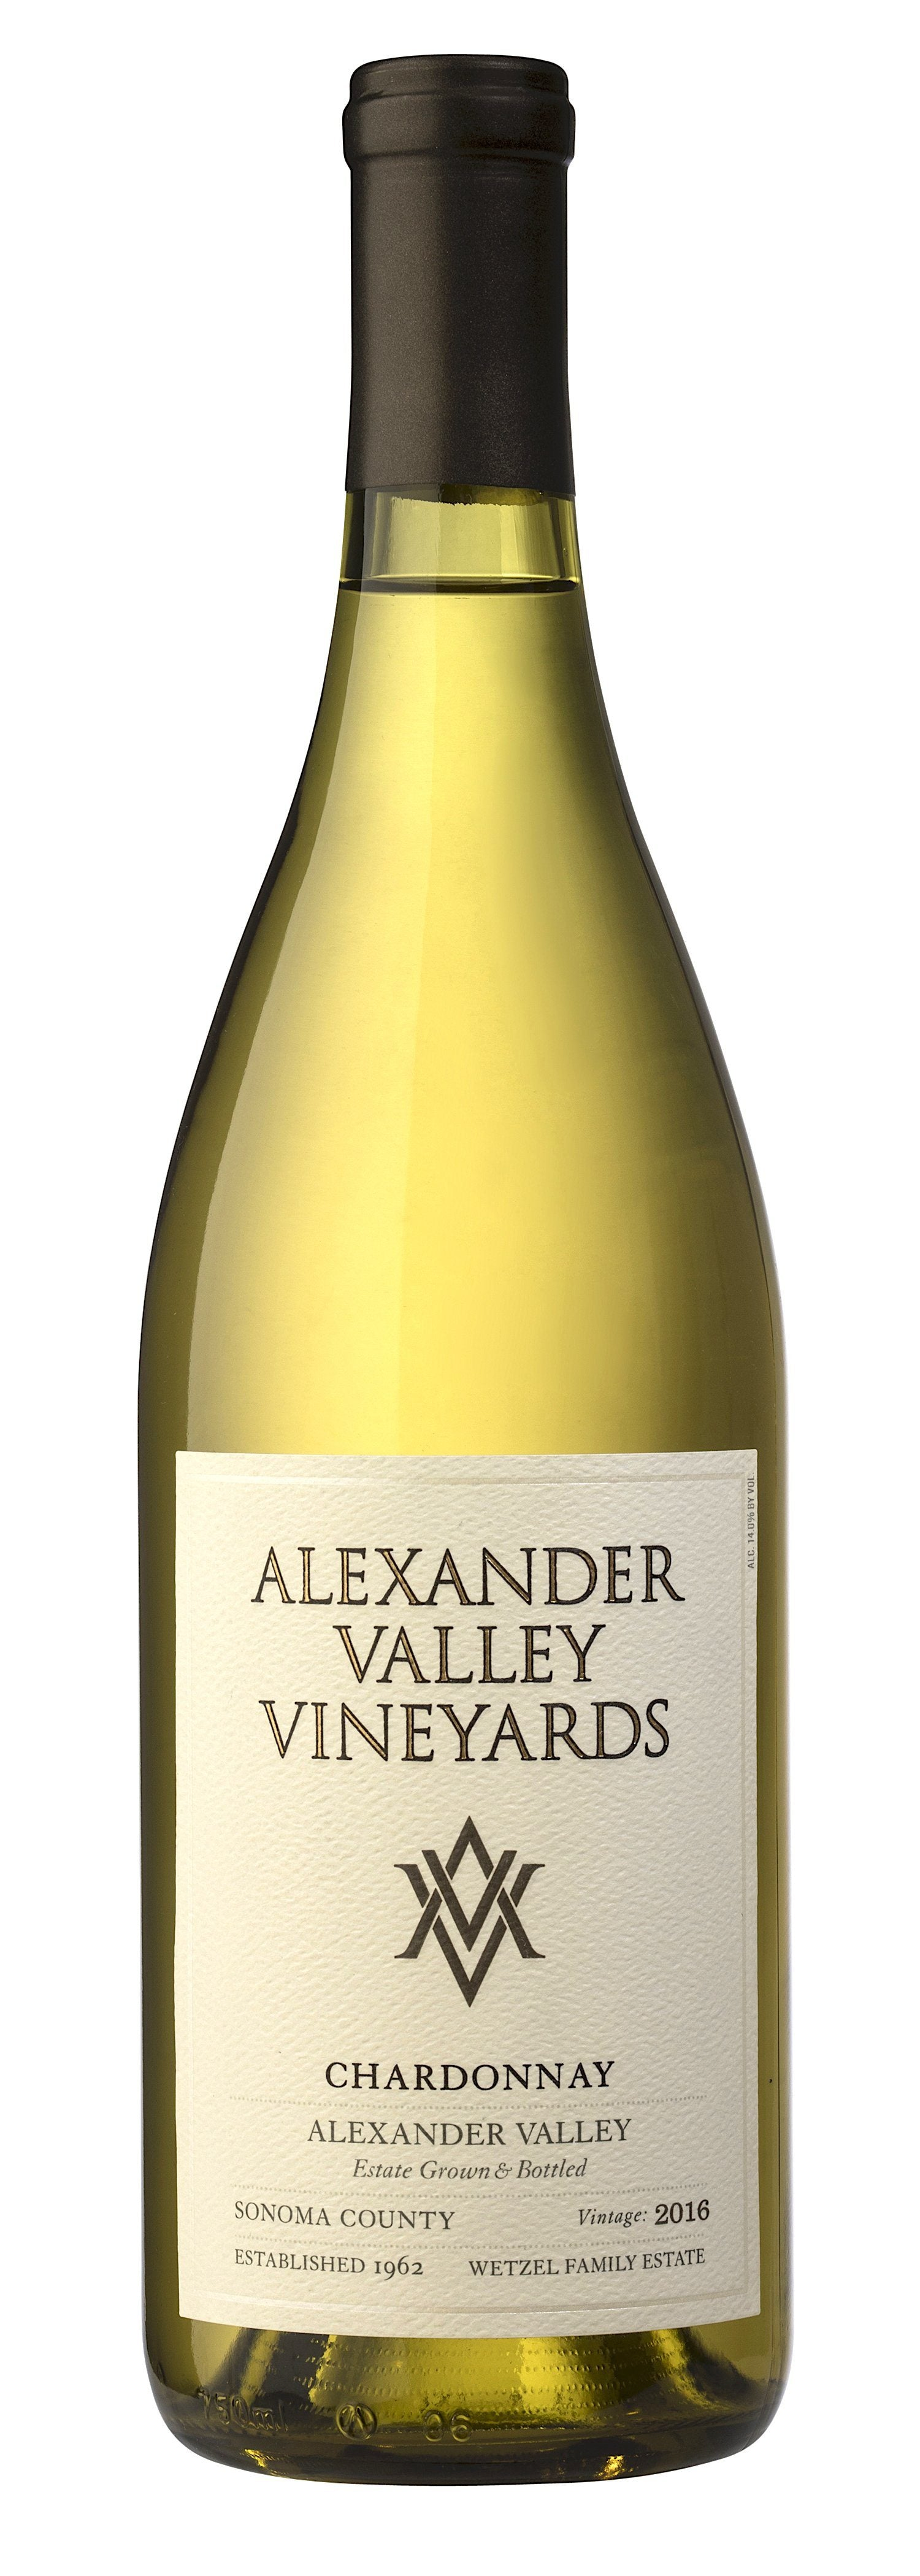 Alexander Valley Vineyards Chardonnay 2016